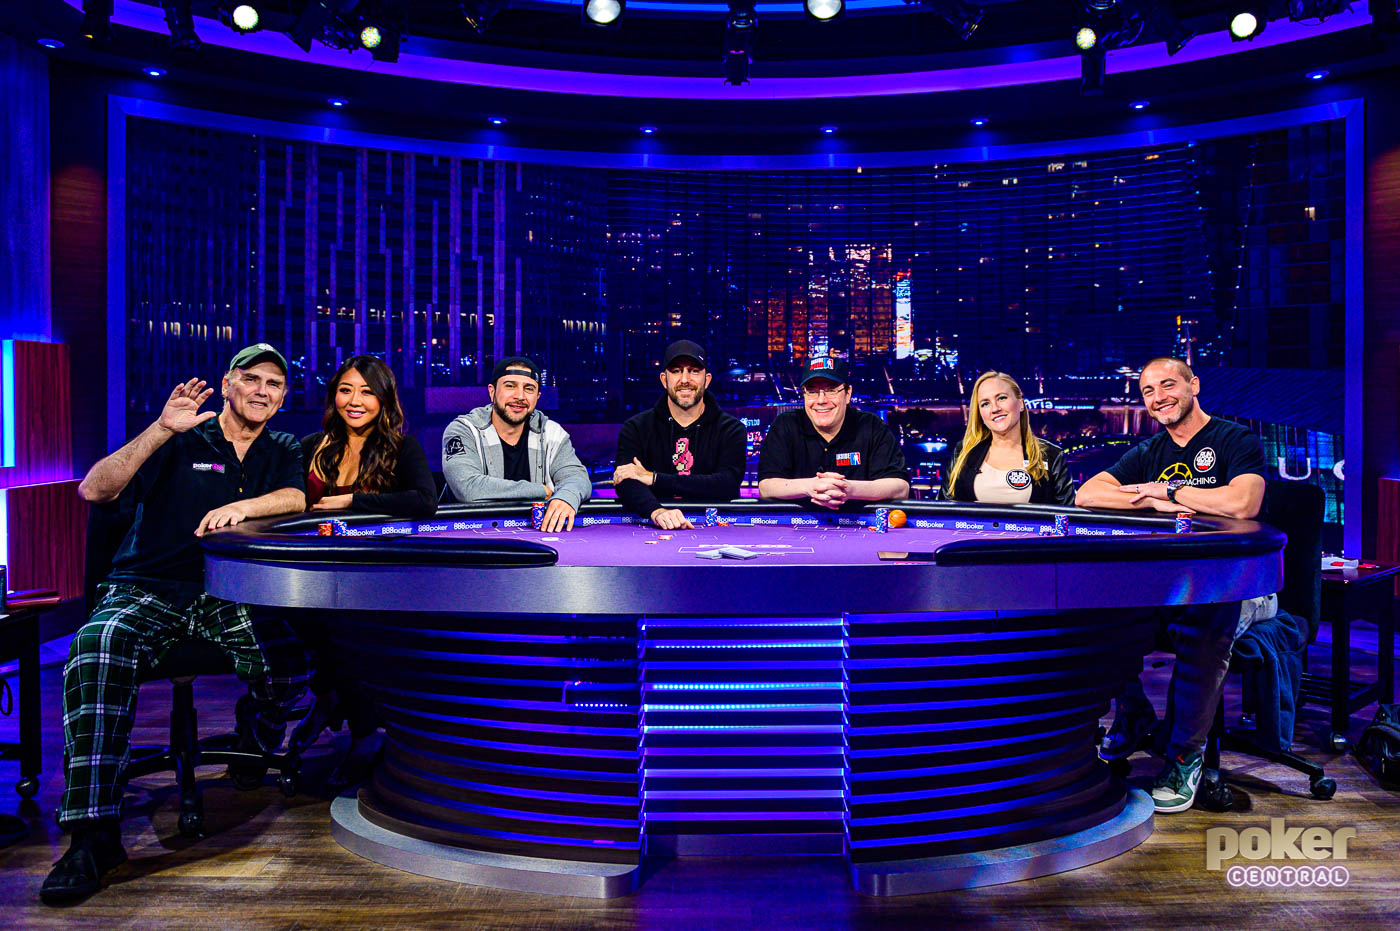 Night 1 of Showbound week on Poker After Dark featured Norm Macdonald, Maria Ho, Garry Gates, Chance Kornuth, Jamie Gold, and Jamie Kerstetter alongside qualifier Woody Kaawar.